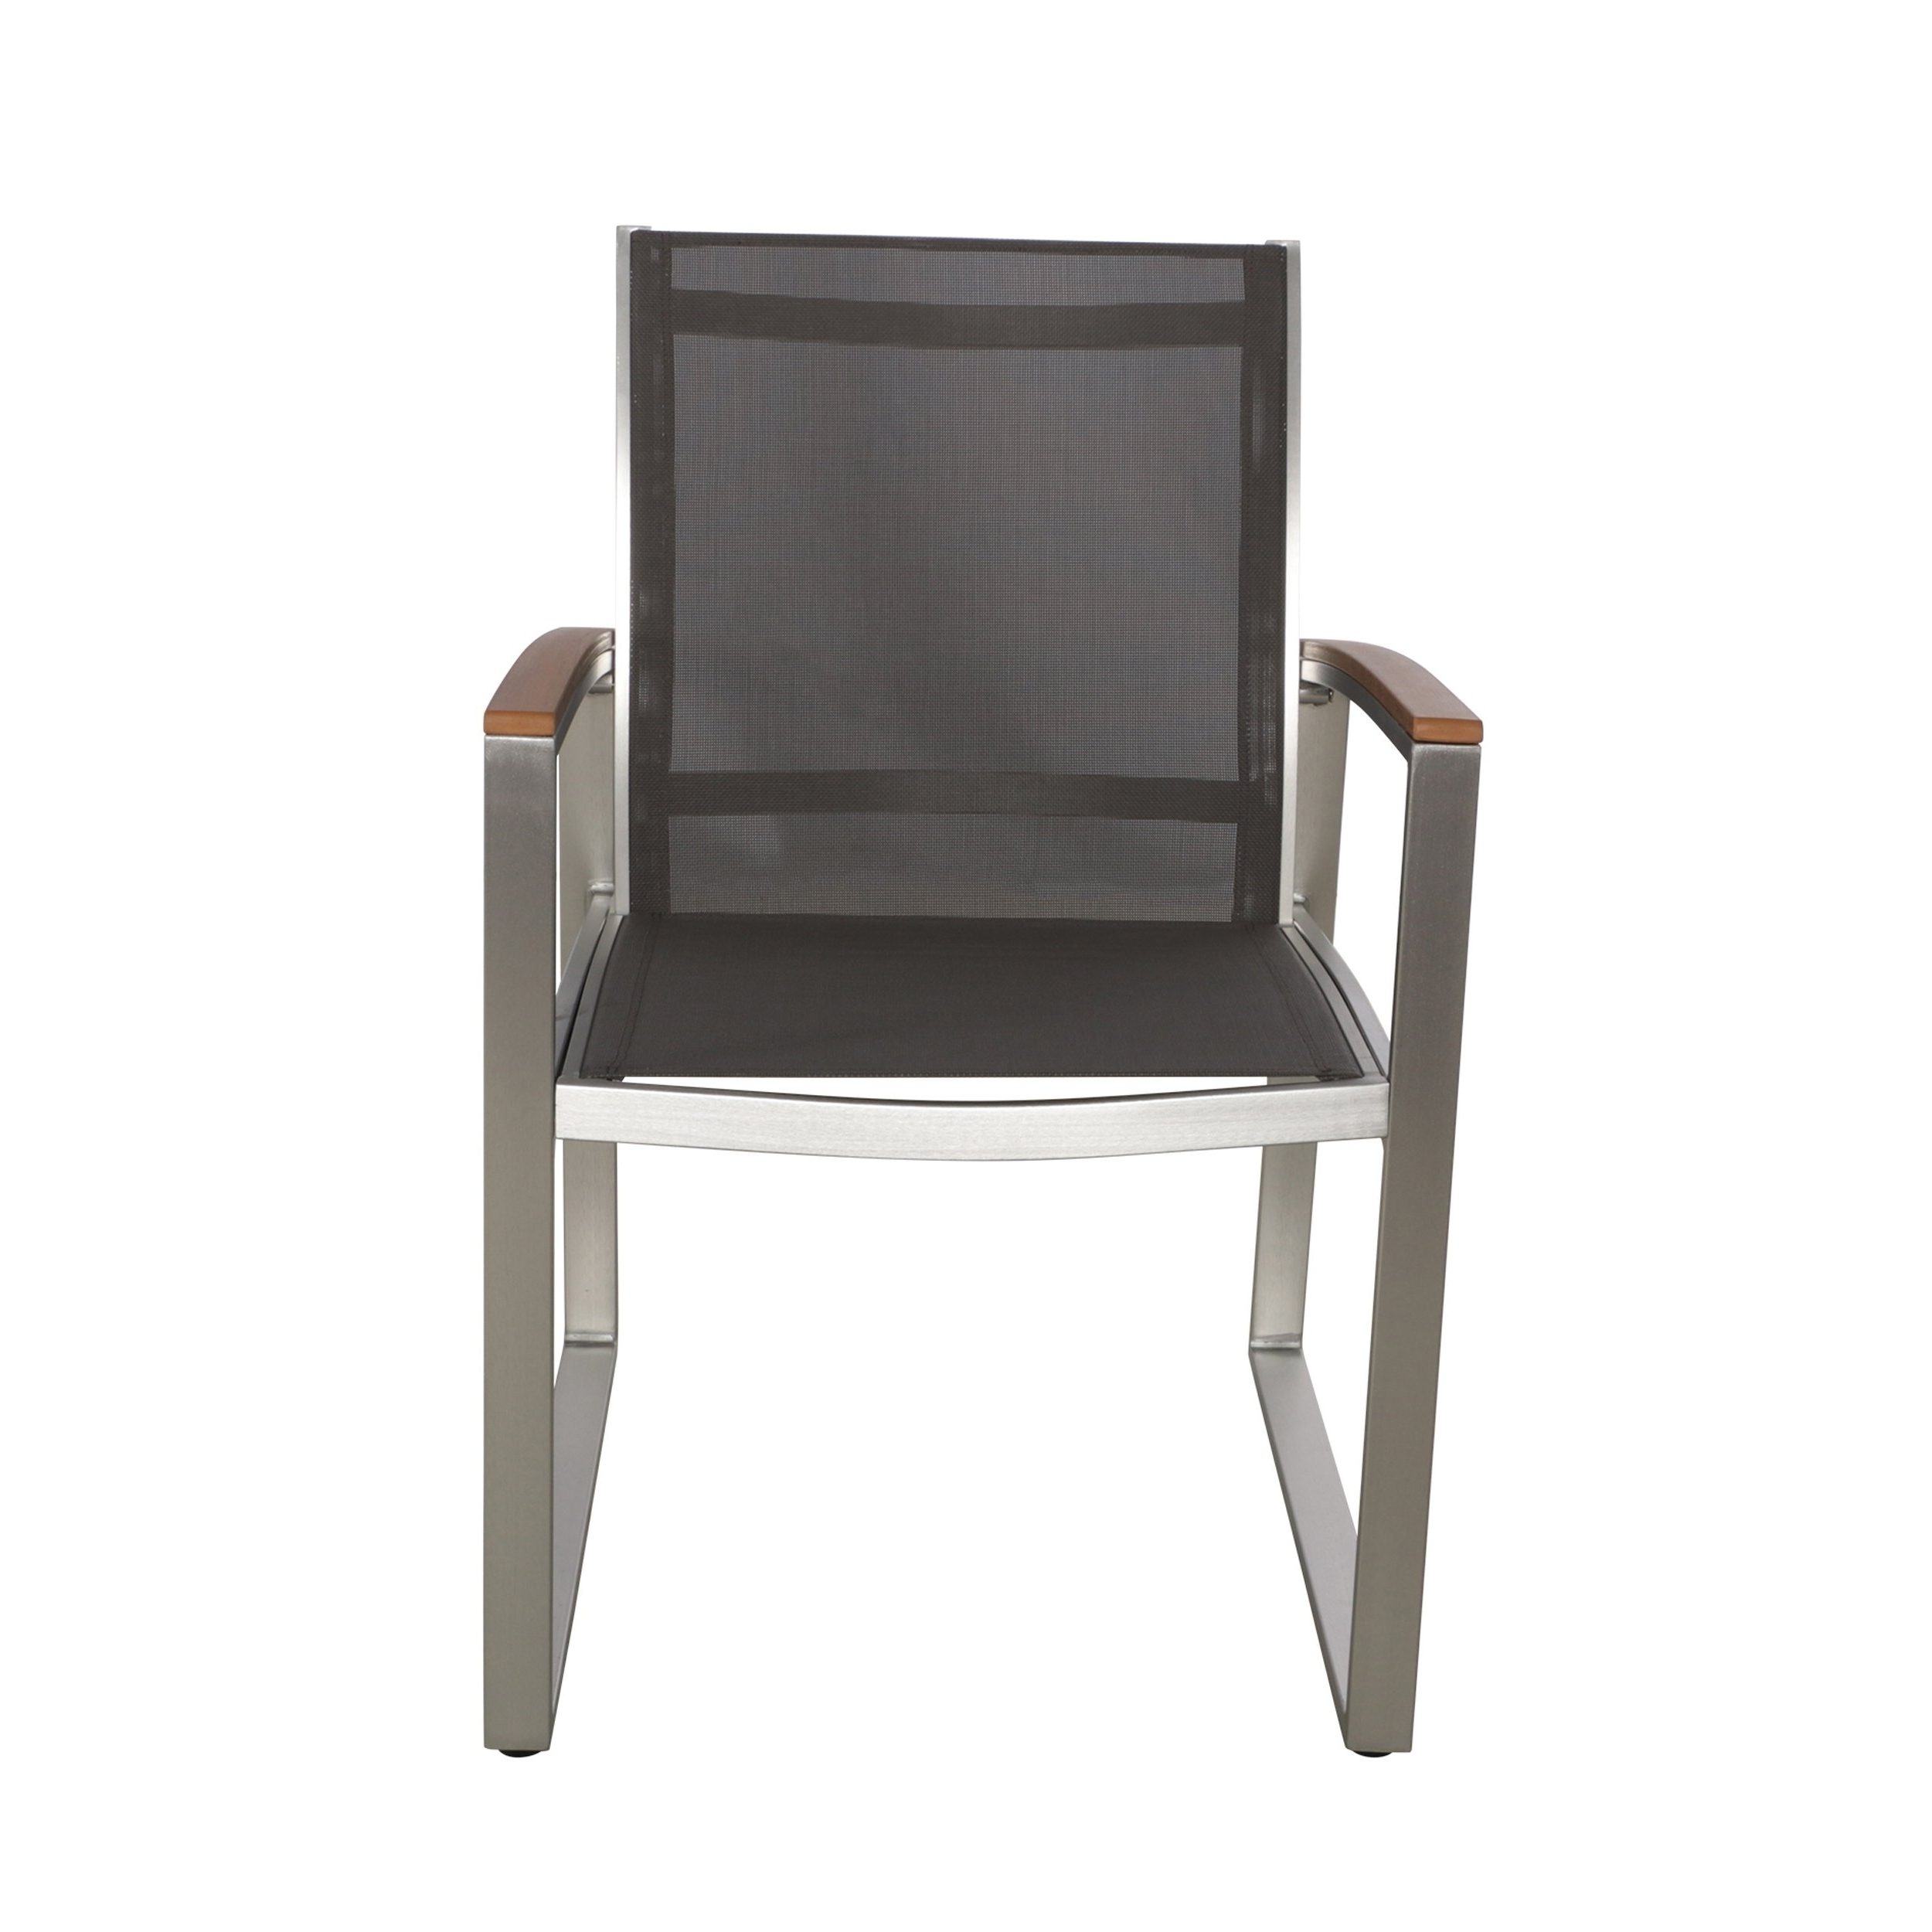 Glasgow Dining Sets Throughout Newest Shop Glasgow Outdoor Dining Chairs With Aluminum Frame (Set Of 2) (Gallery 25 of 25)